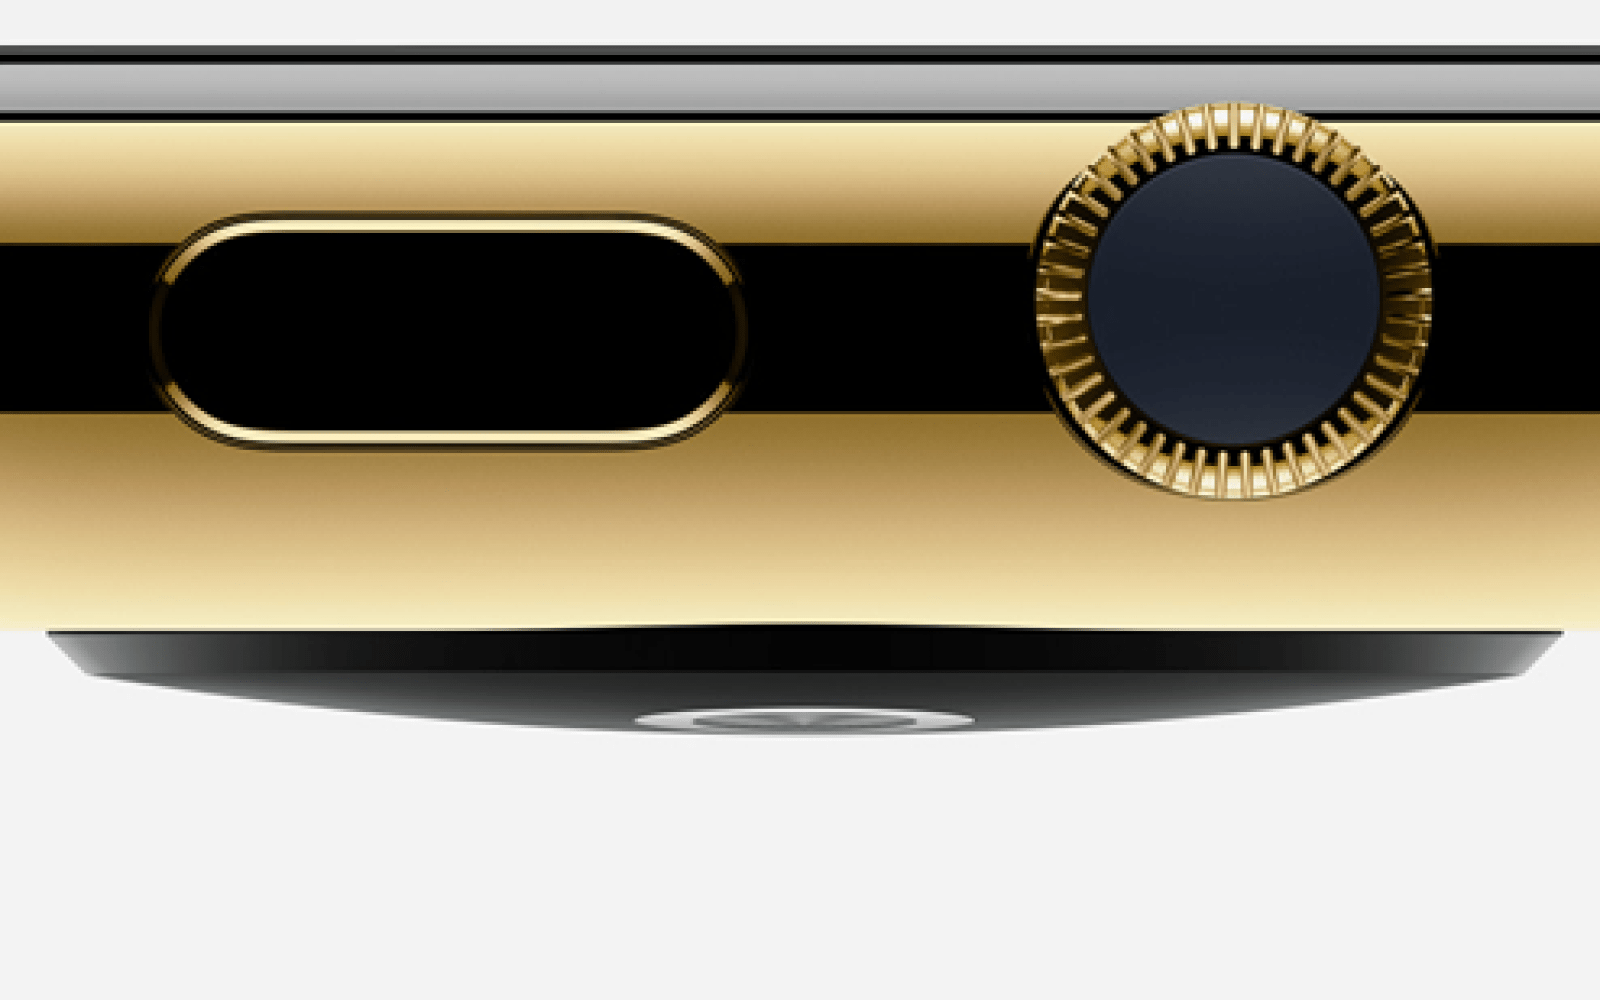 Apple Watch uses constant skin contact to validate Apple Pay purchases